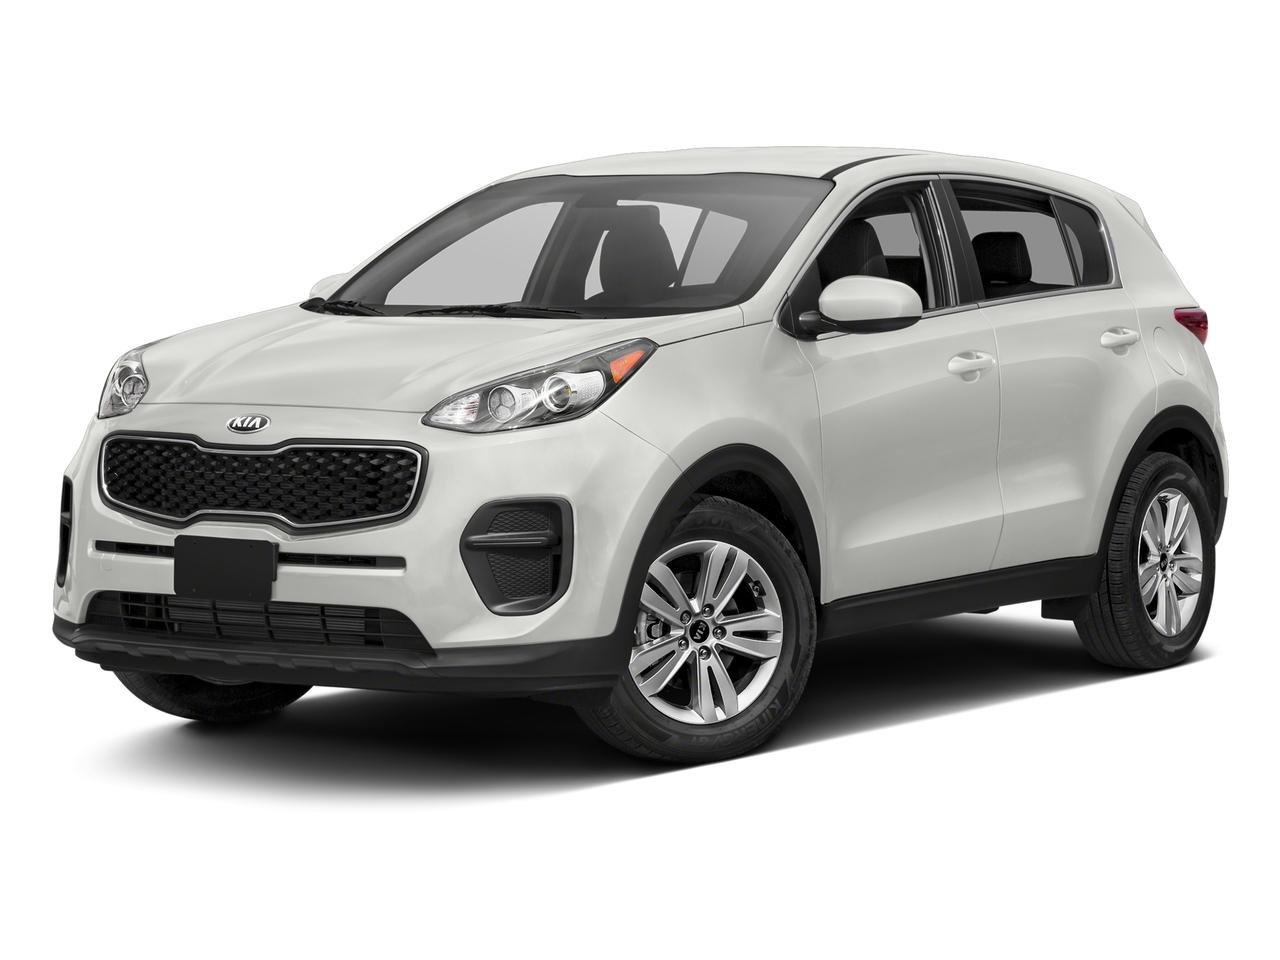 2017 Kia Sportage Vehicle Photo in Beaufort, SC 29906